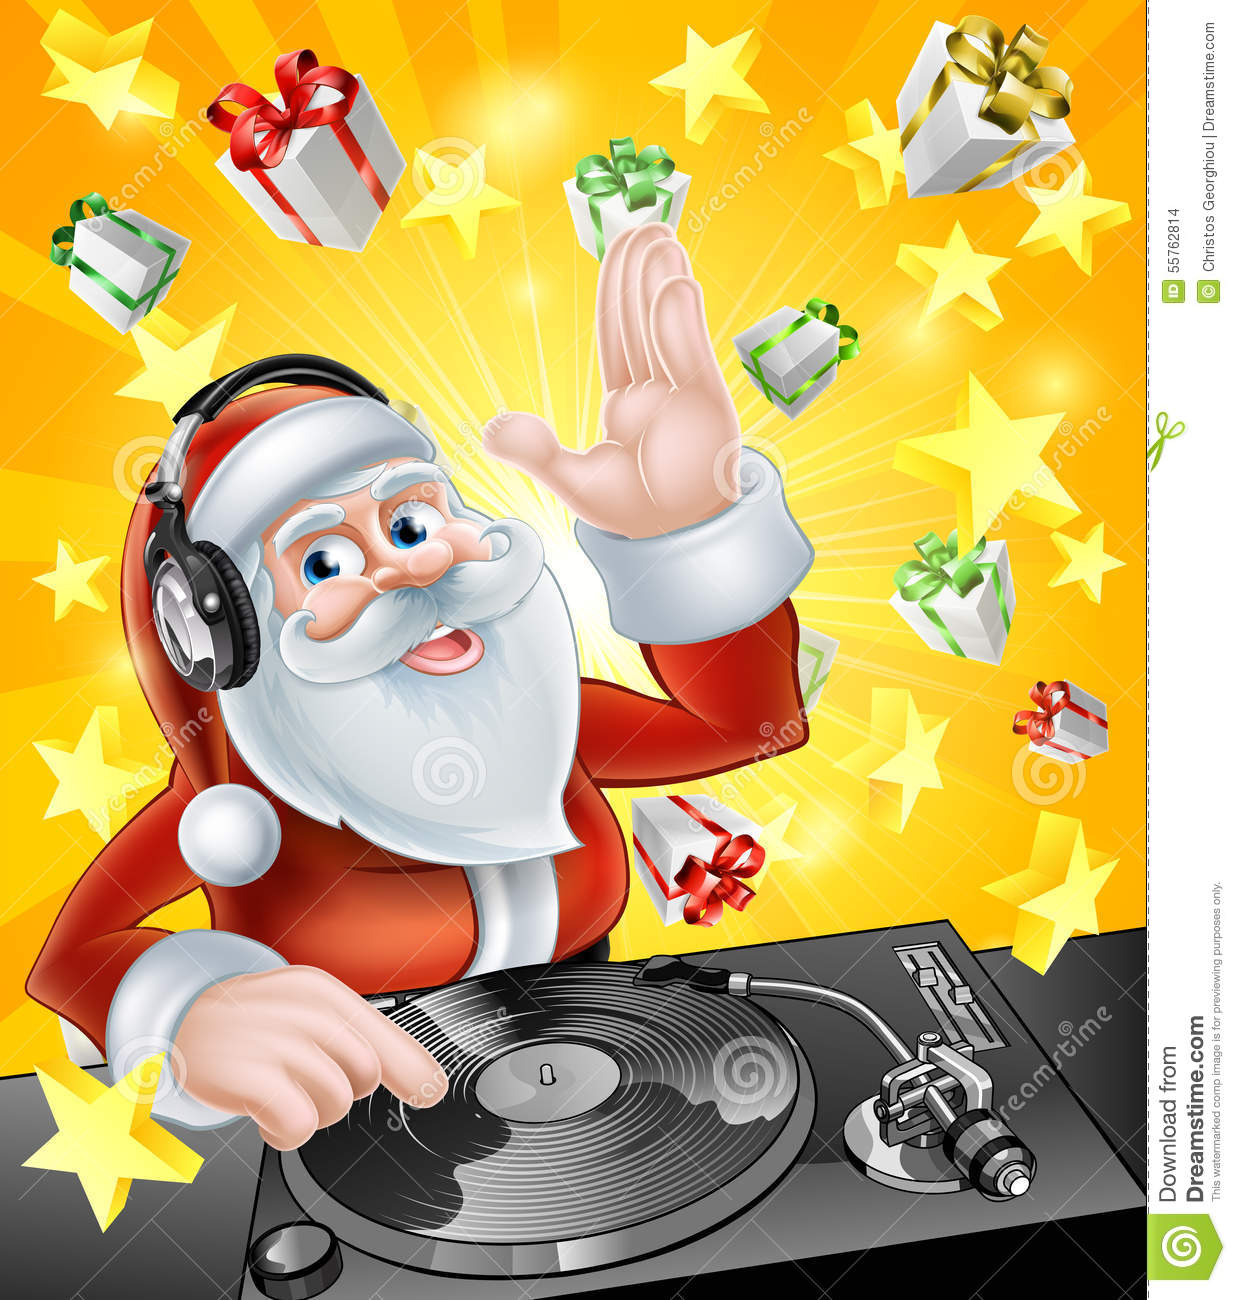 christmas party dj santa stock vector illustration of. Black Bedroom Furniture Sets. Home Design Ideas